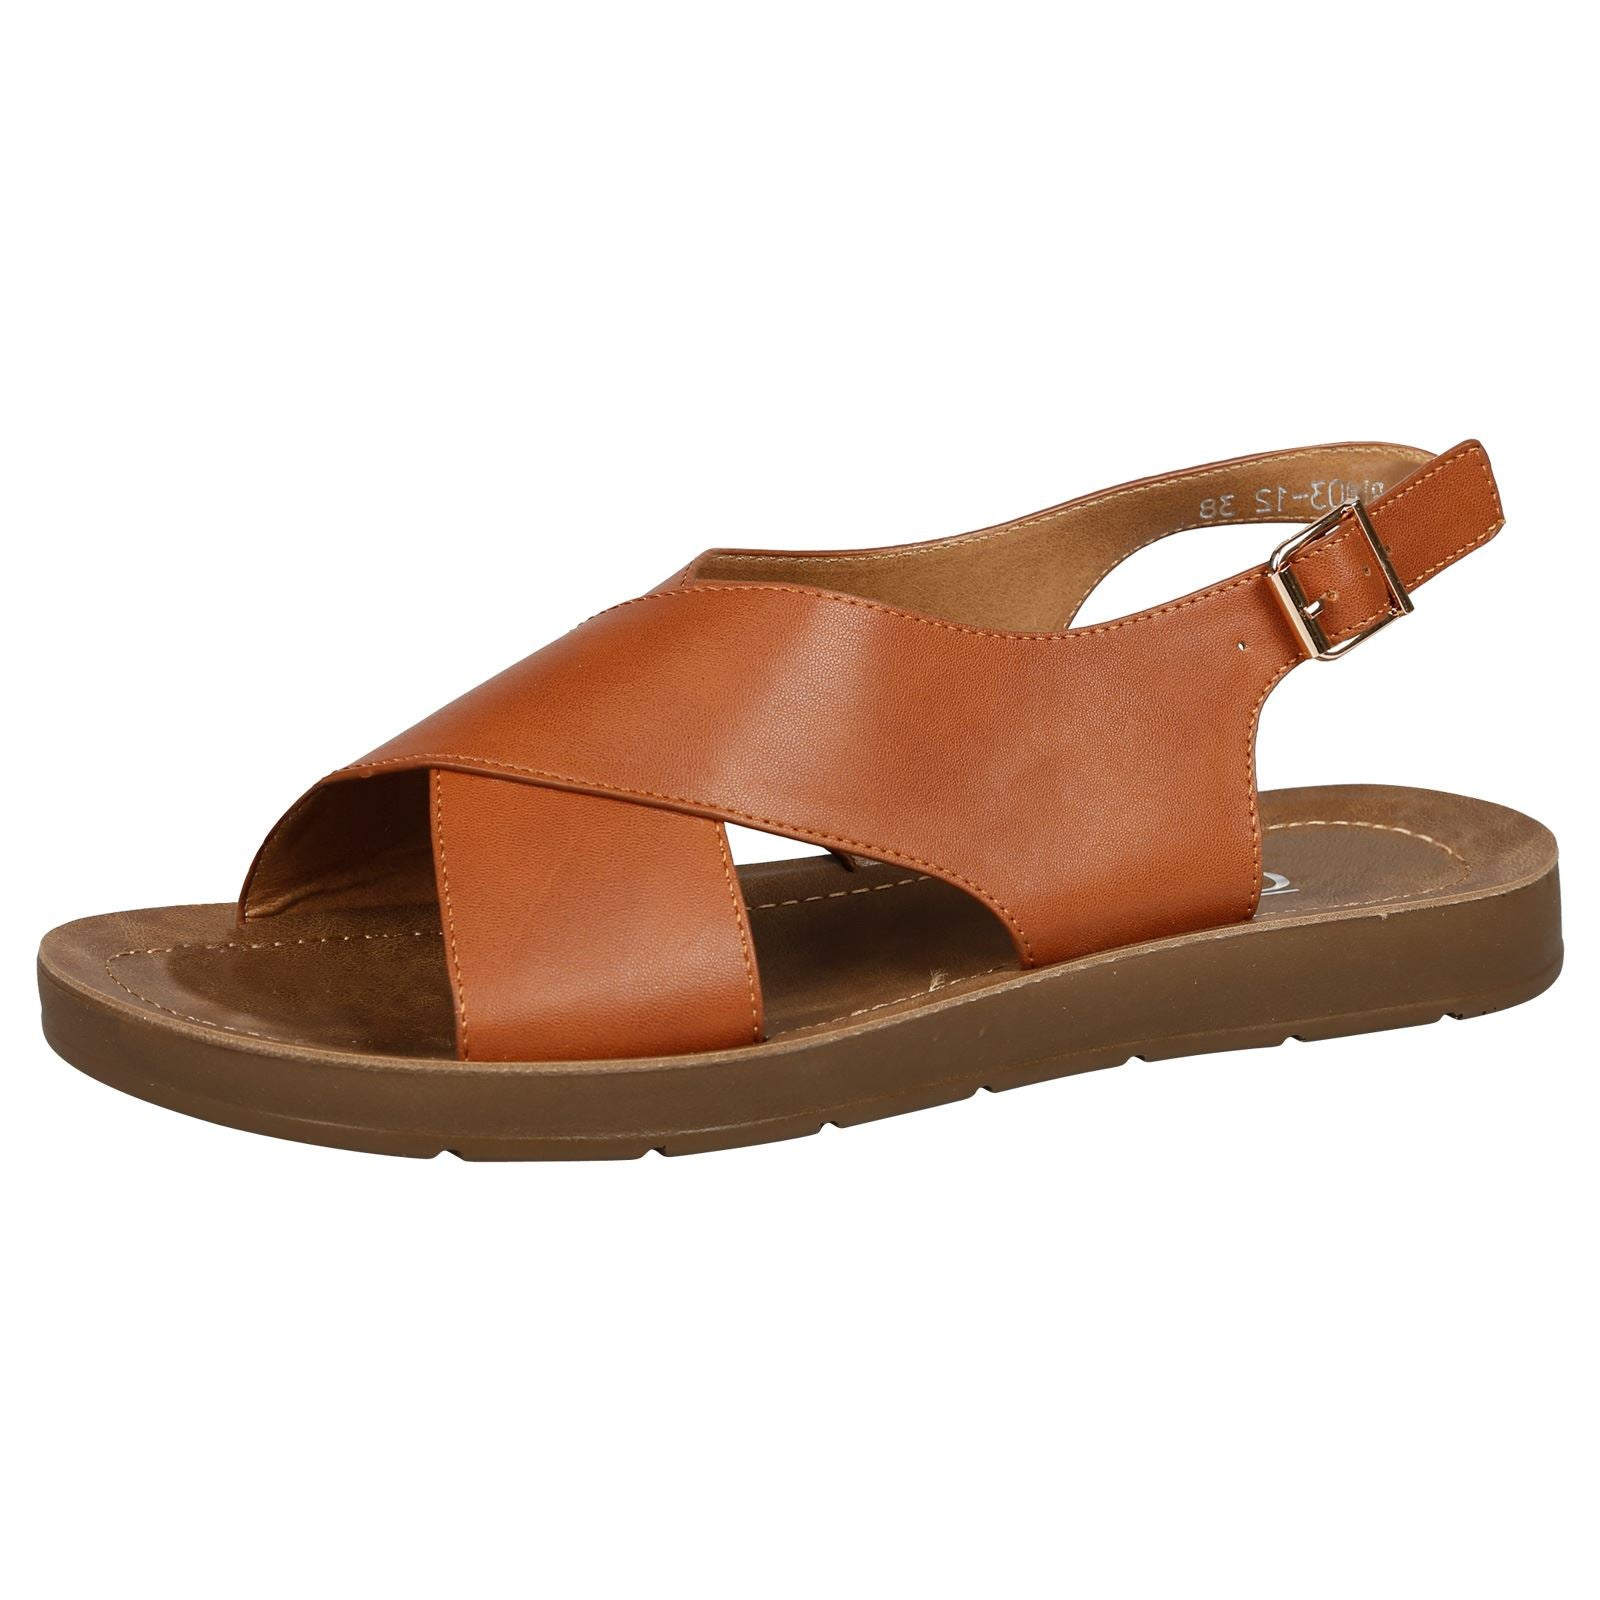 Nila Footbed Slingback Sandals in Camel Faux Leather